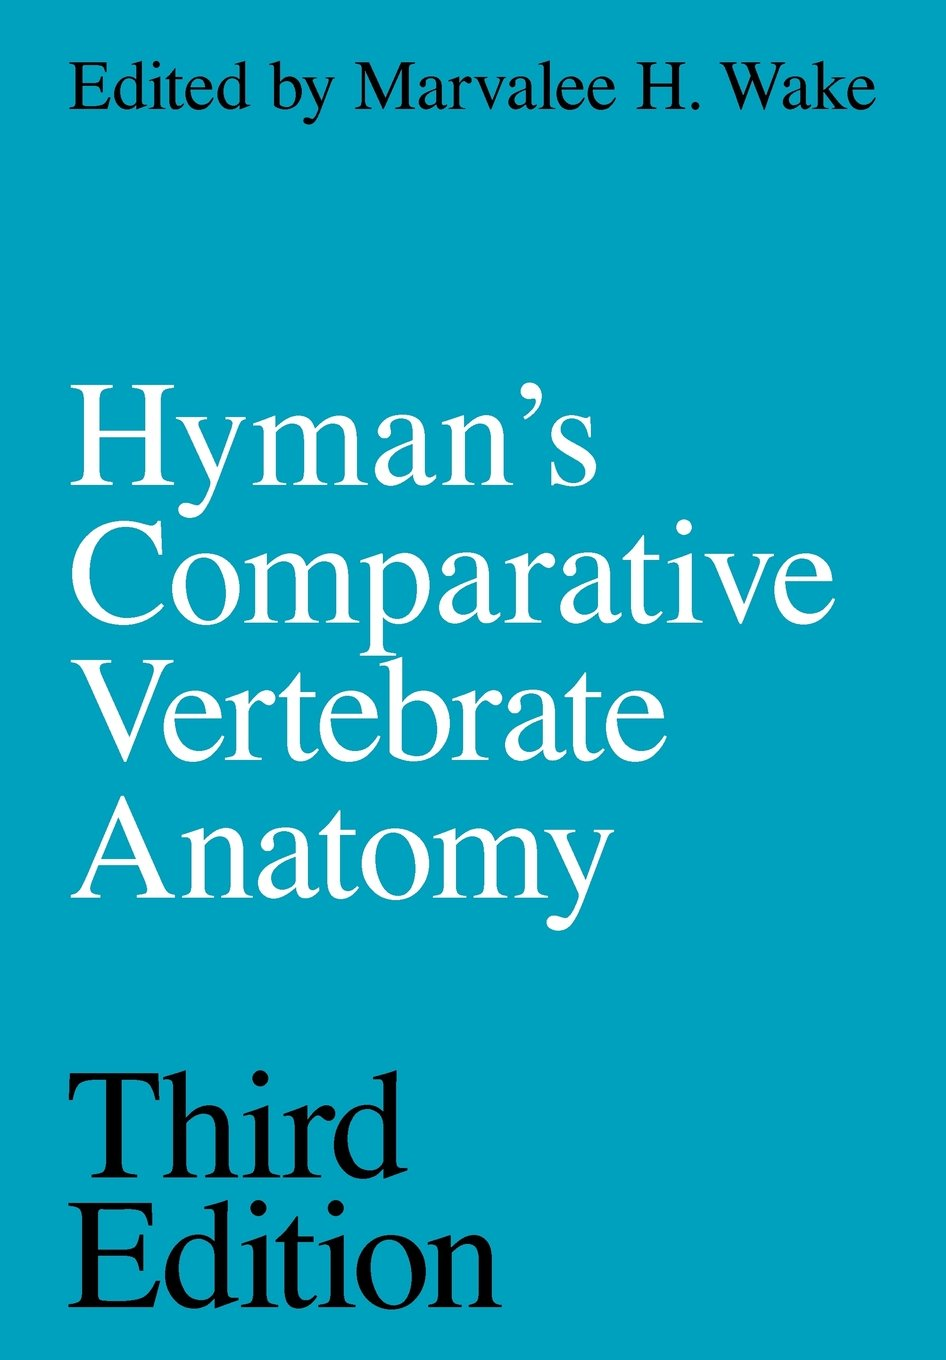 Hyman\'s Comparative Vertebrate Anatomy: Amazon.co.uk: Marvalee H ...